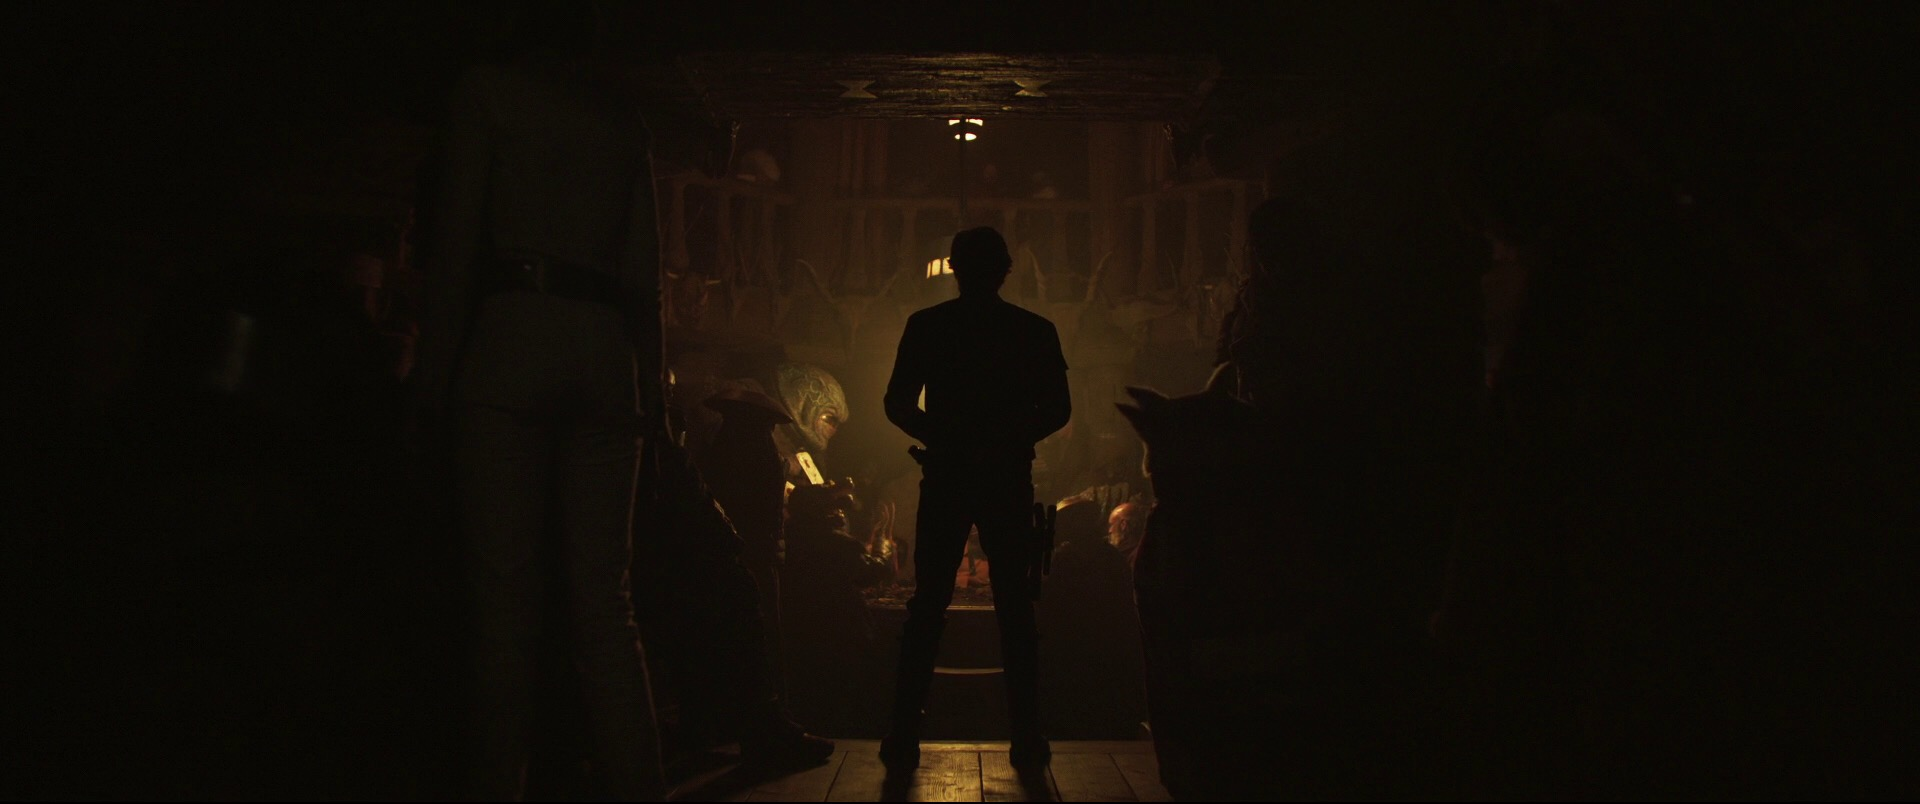 Solo-A-Star-Wars-Story-Trailer-Analysis-Solo-Arrives-At-The-Cantina-Future-of-the-Force